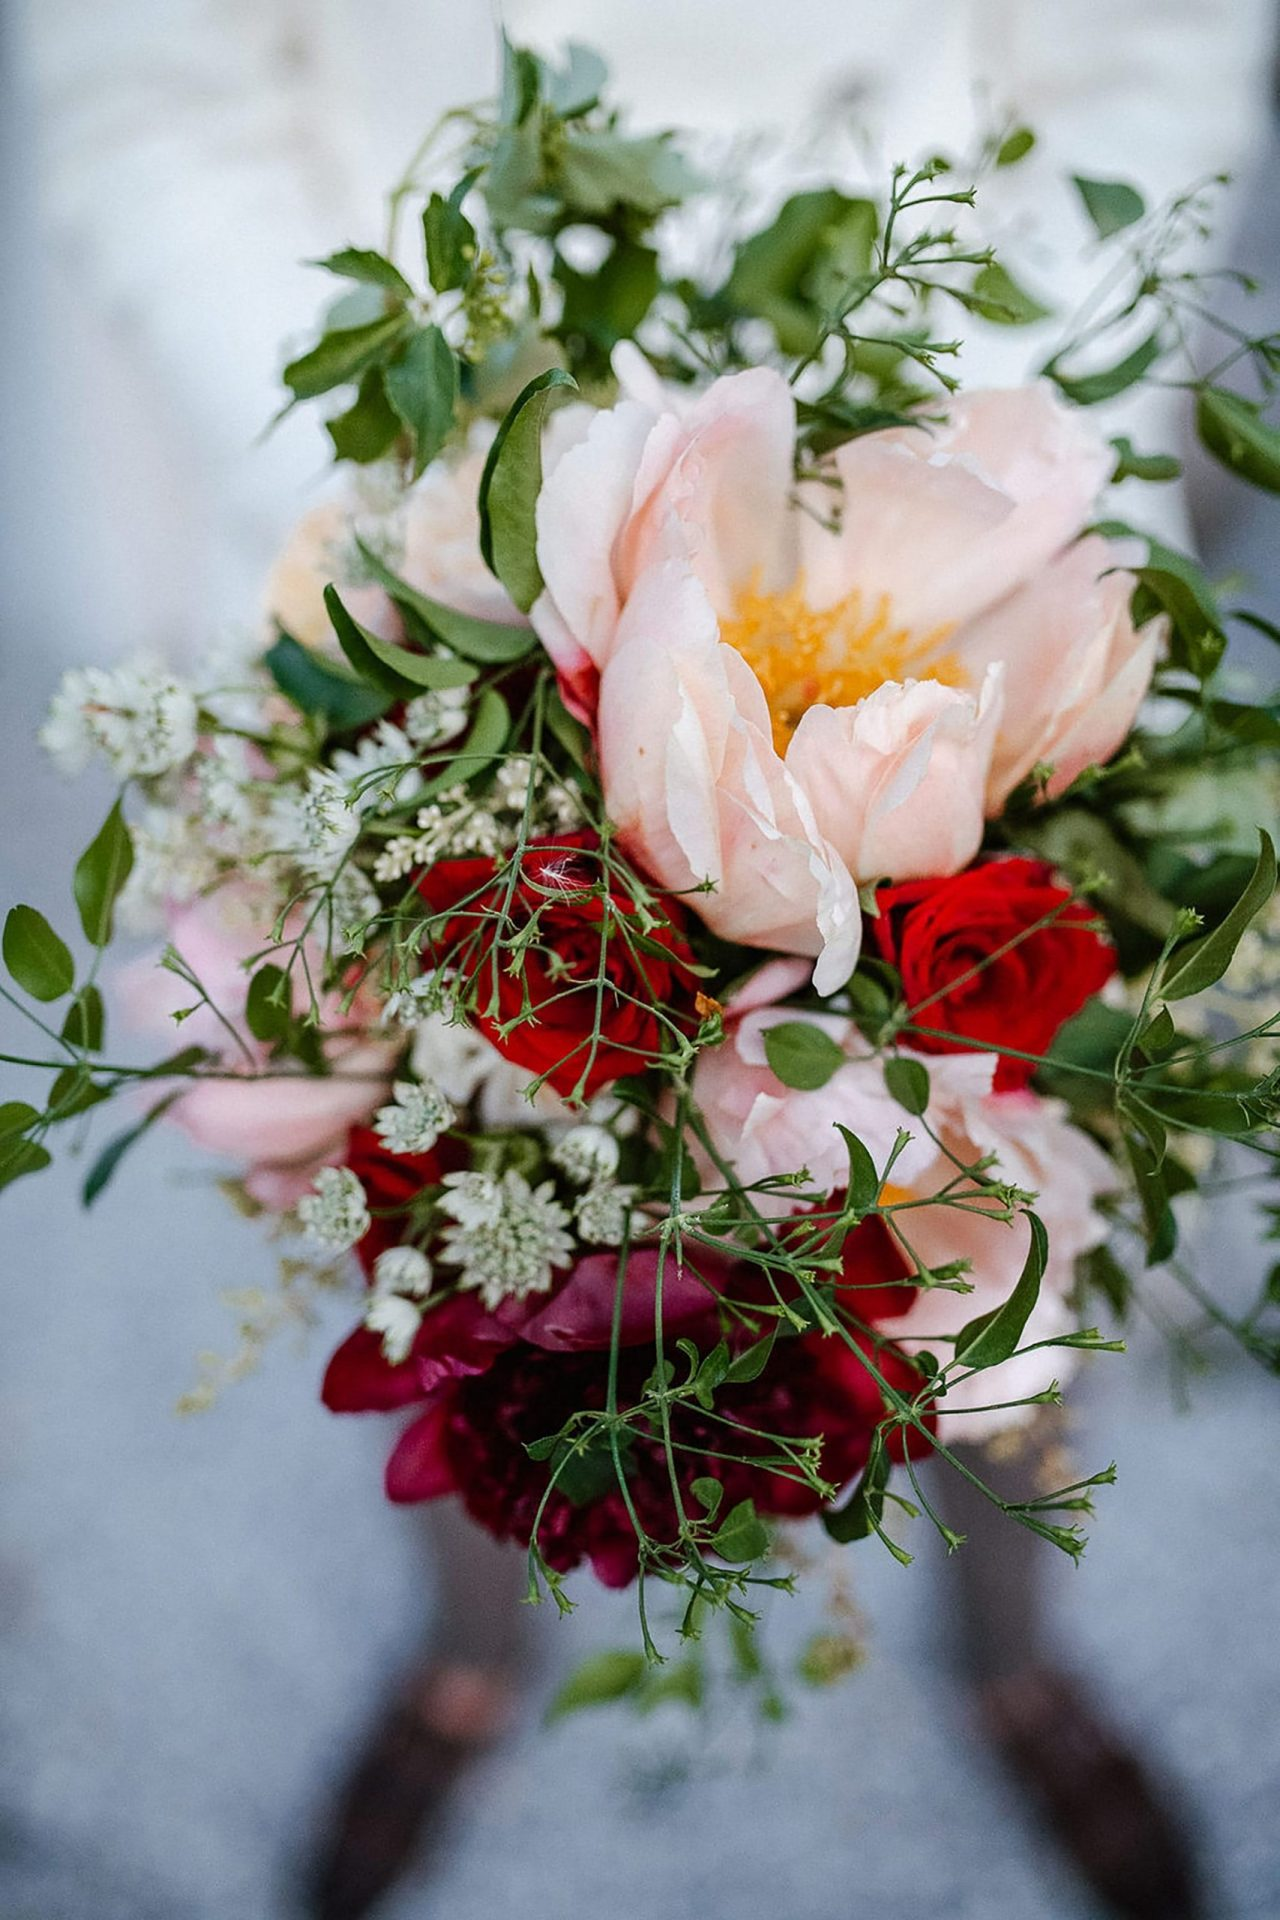 Marianna & Matteo, country style flowers detail